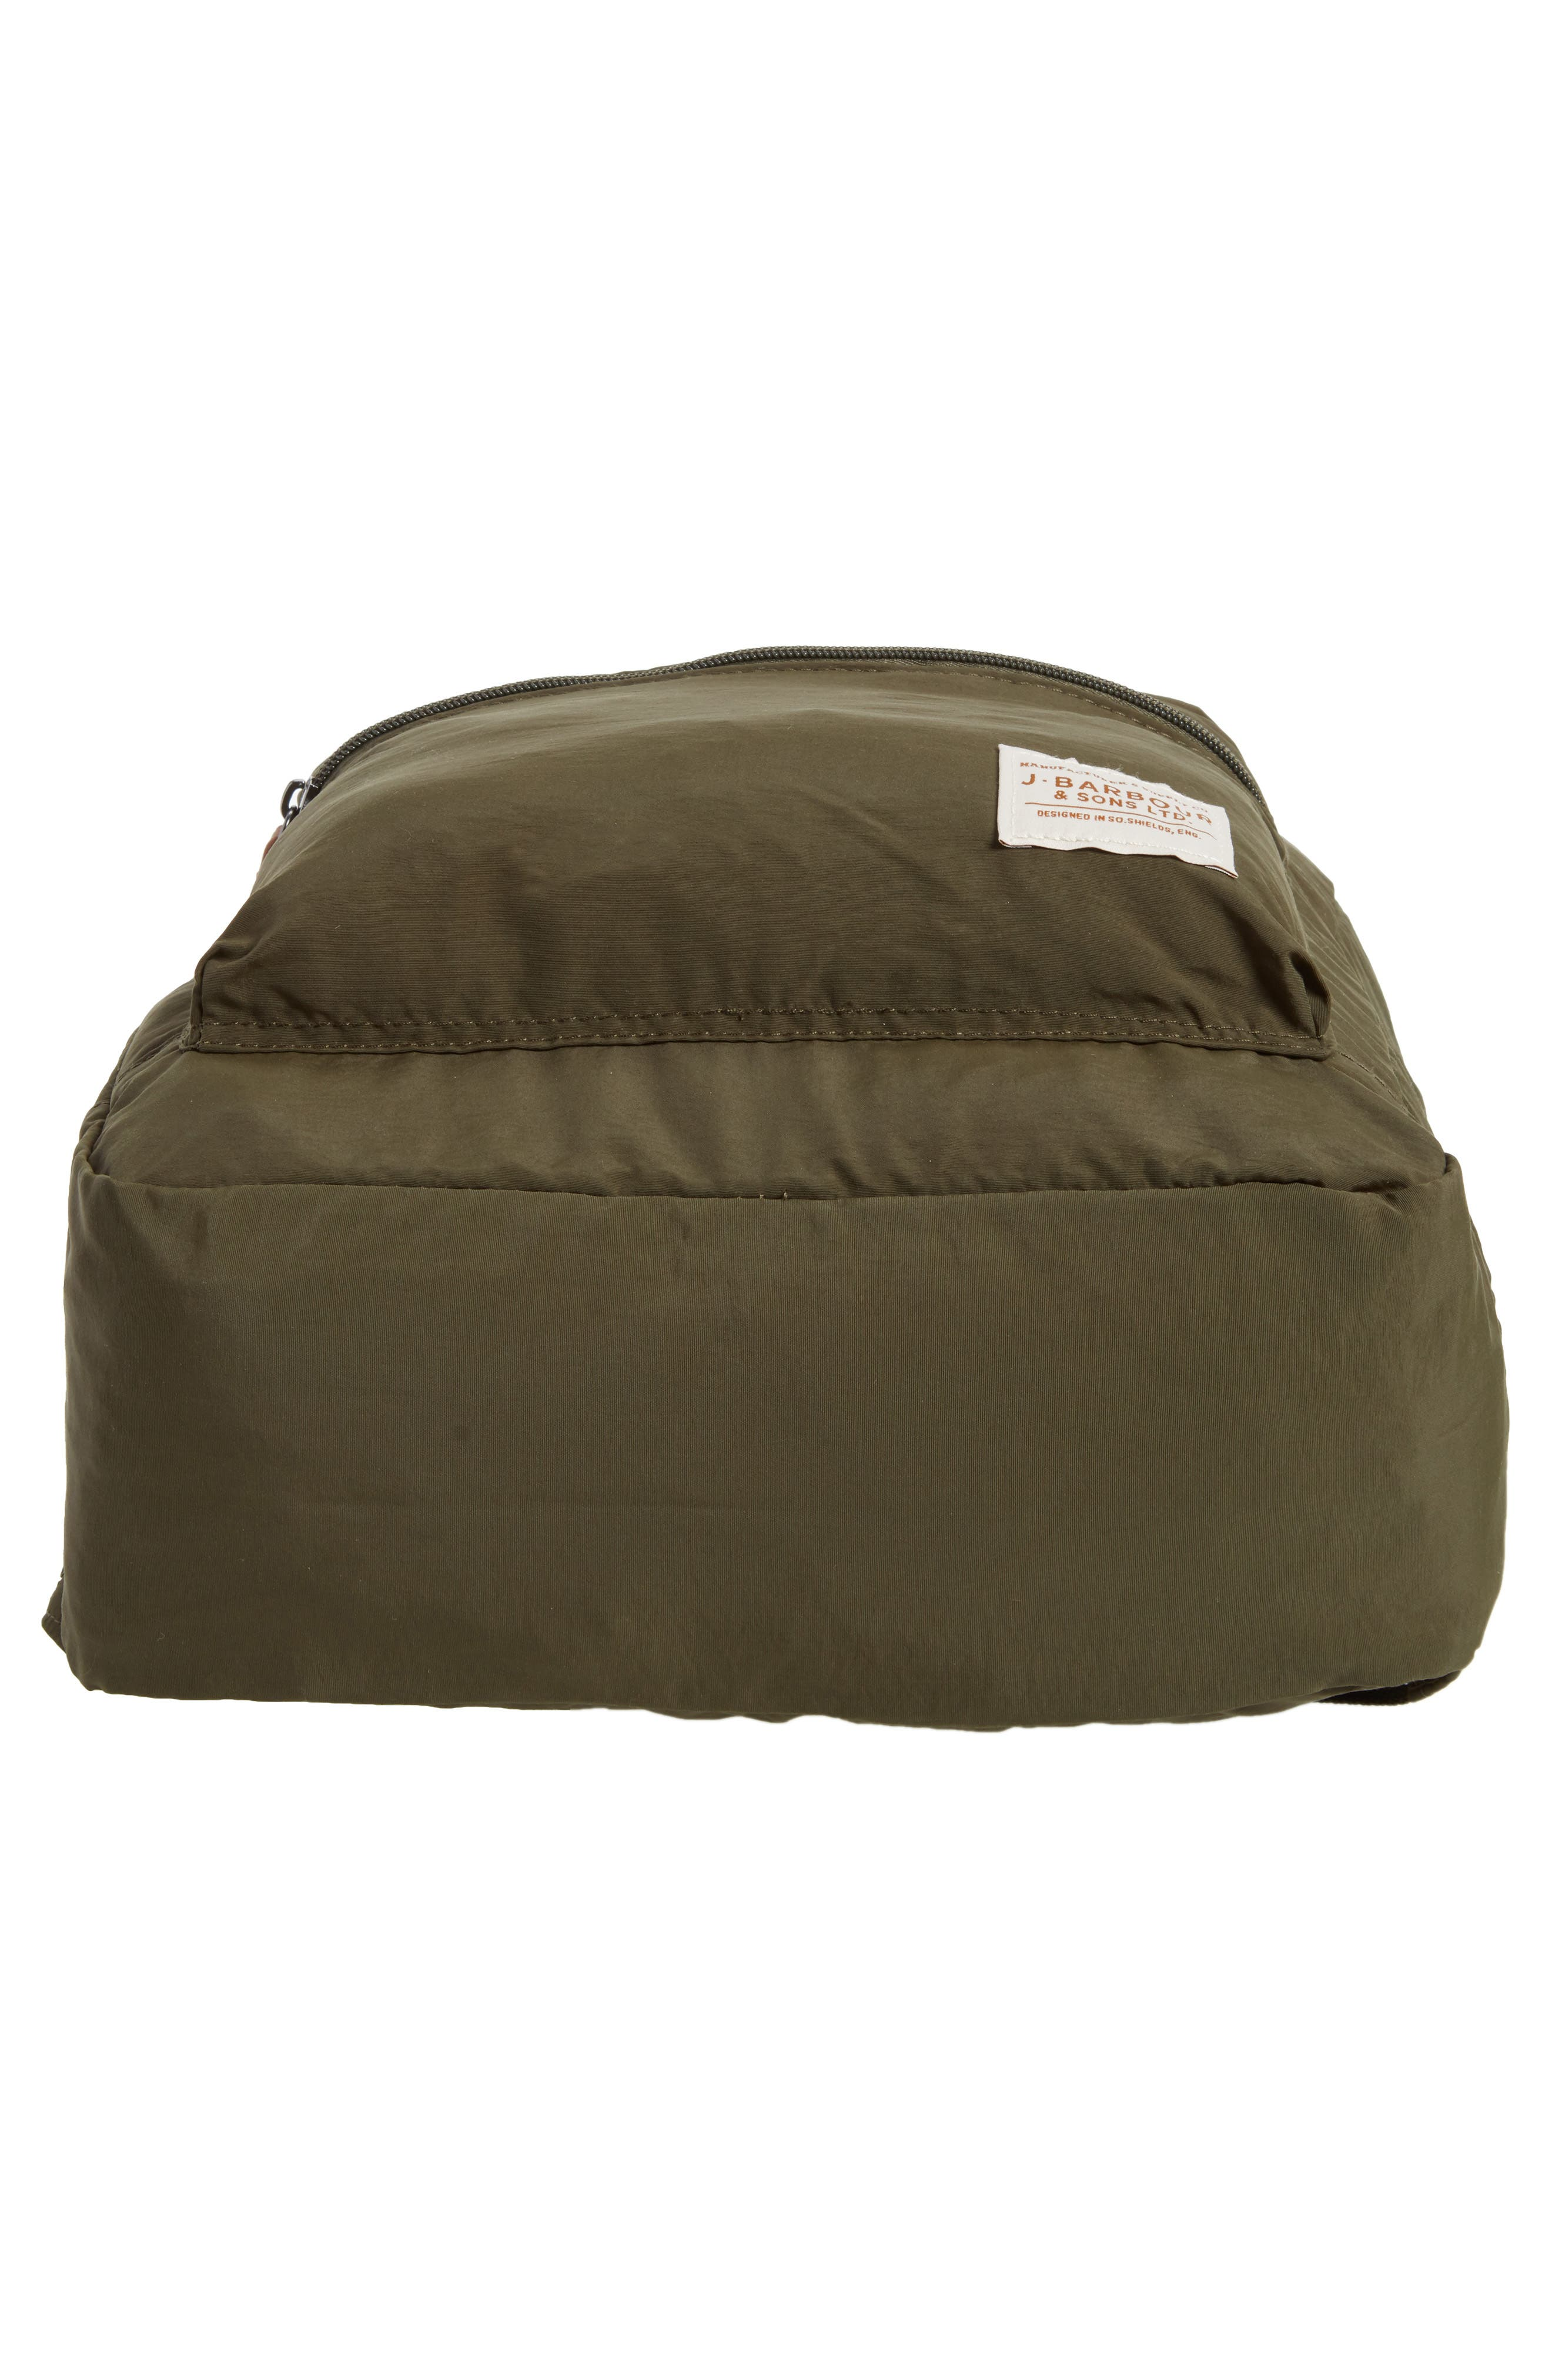 BARBOUR, Beauly Packable Backpack, Alternate thumbnail 6, color, DARK GREEN